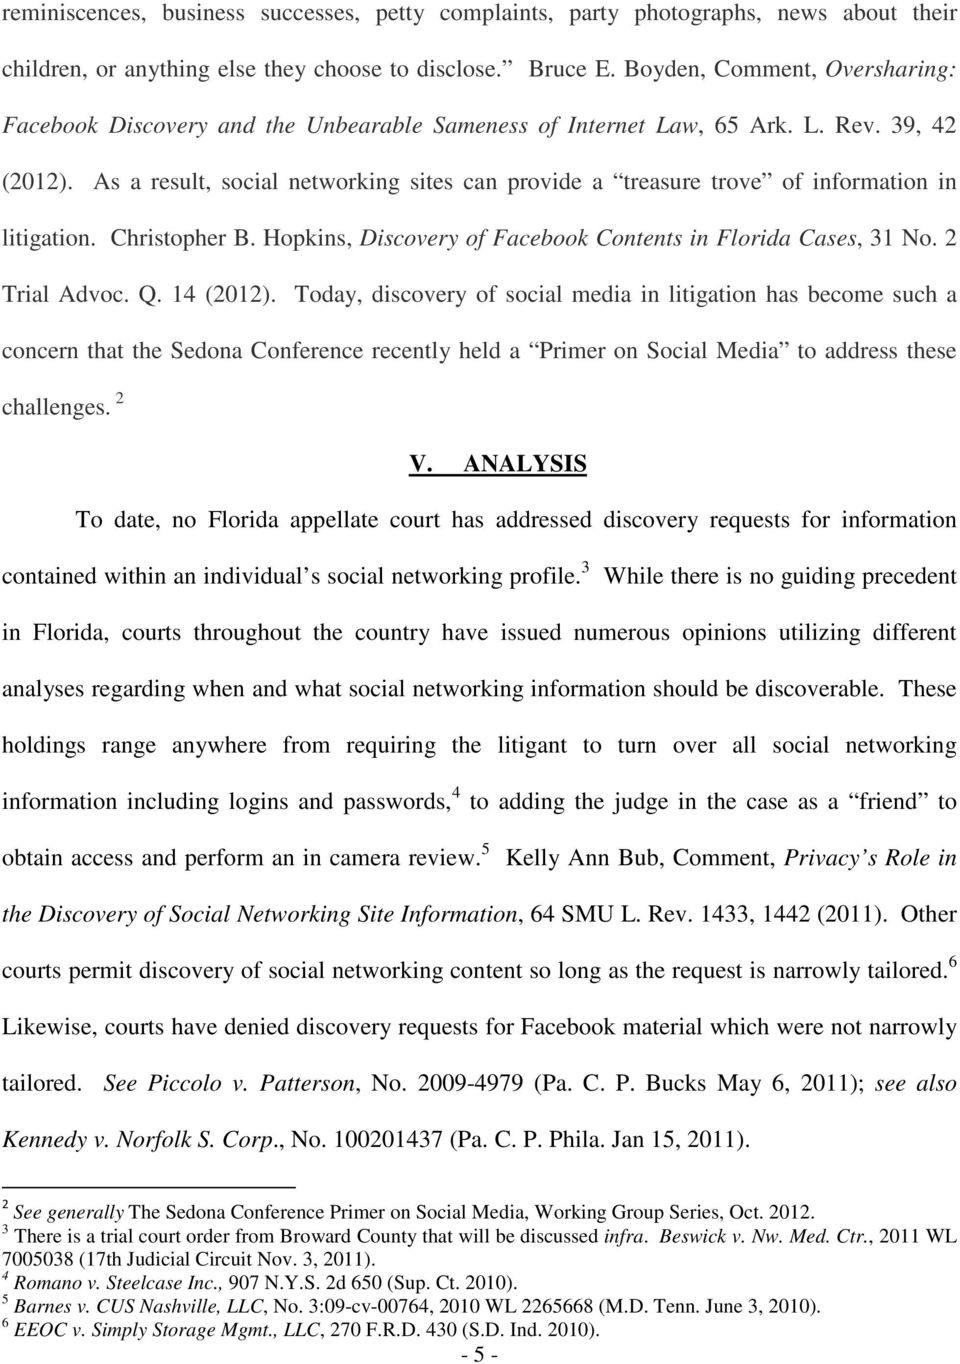 As a result, social networking sites can provide a treasure trove of information in litigation. Christopher B. Hopkins, Discovery of Facebook Contents in Florida Cases, 31 No. 2 Trial Advoc. Q.